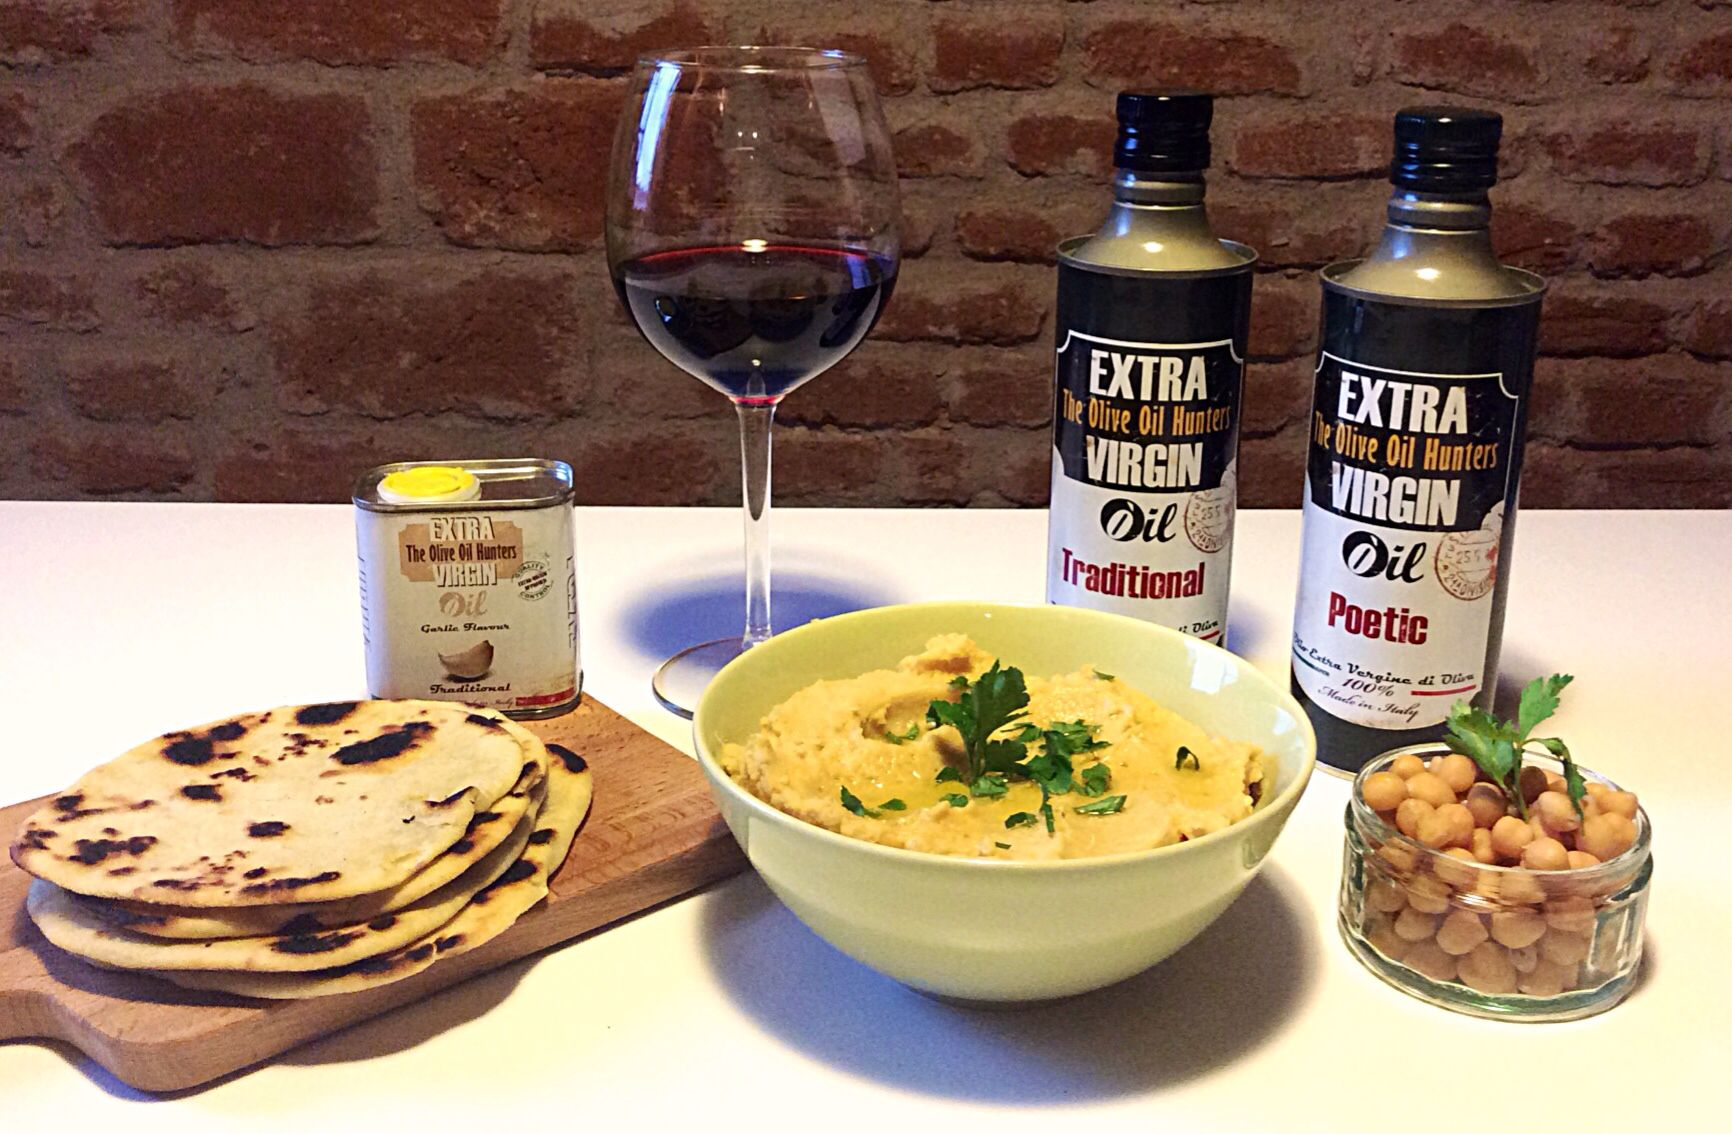 #homemade #kesra and #hummus with a secret ingredient: #garlic #oliveoil bought on www.extravirginshop.com